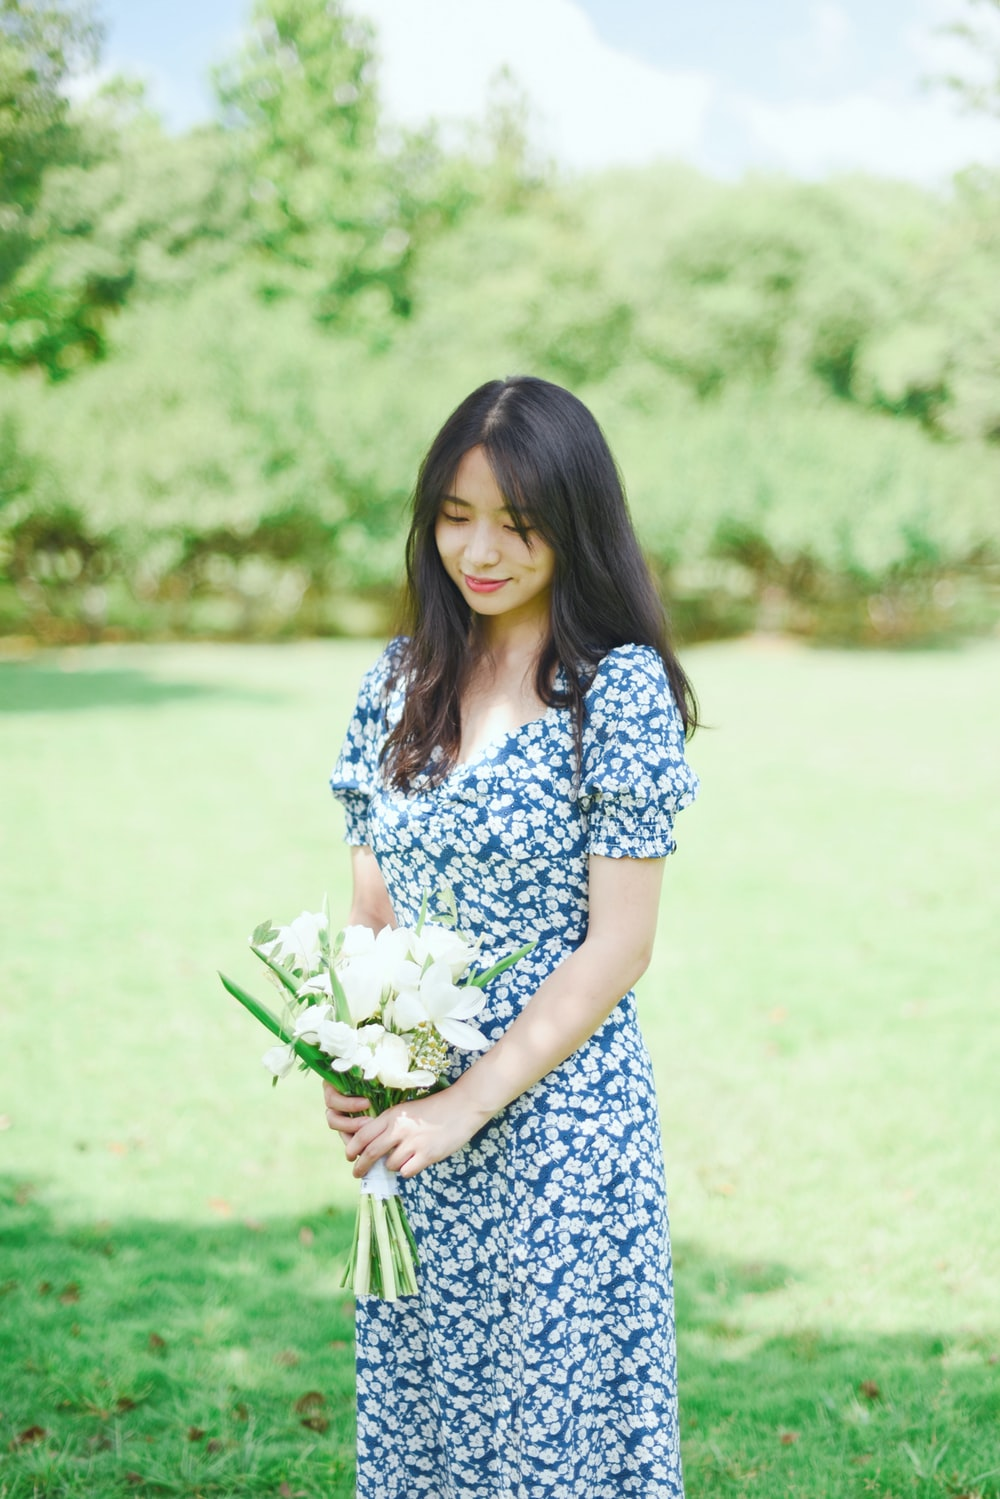 woman in blue and white floral dress holding white flower bouquet